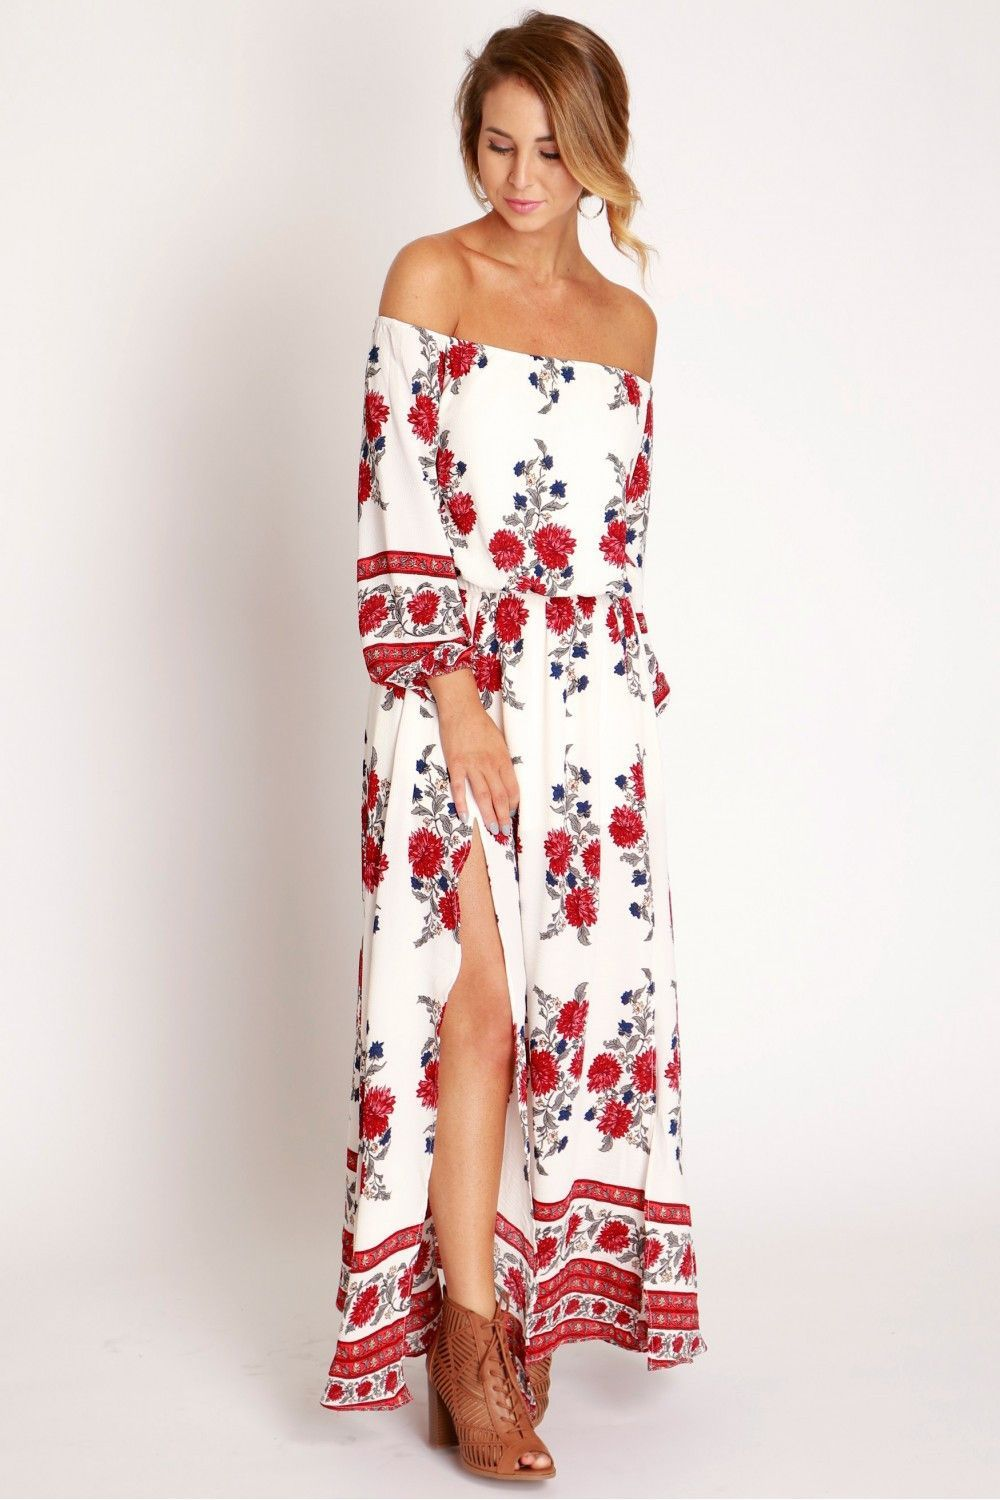 8c55585771 Off Shoulder Floral Maxi Dress | My Style | Floral maxi dress, Red ...